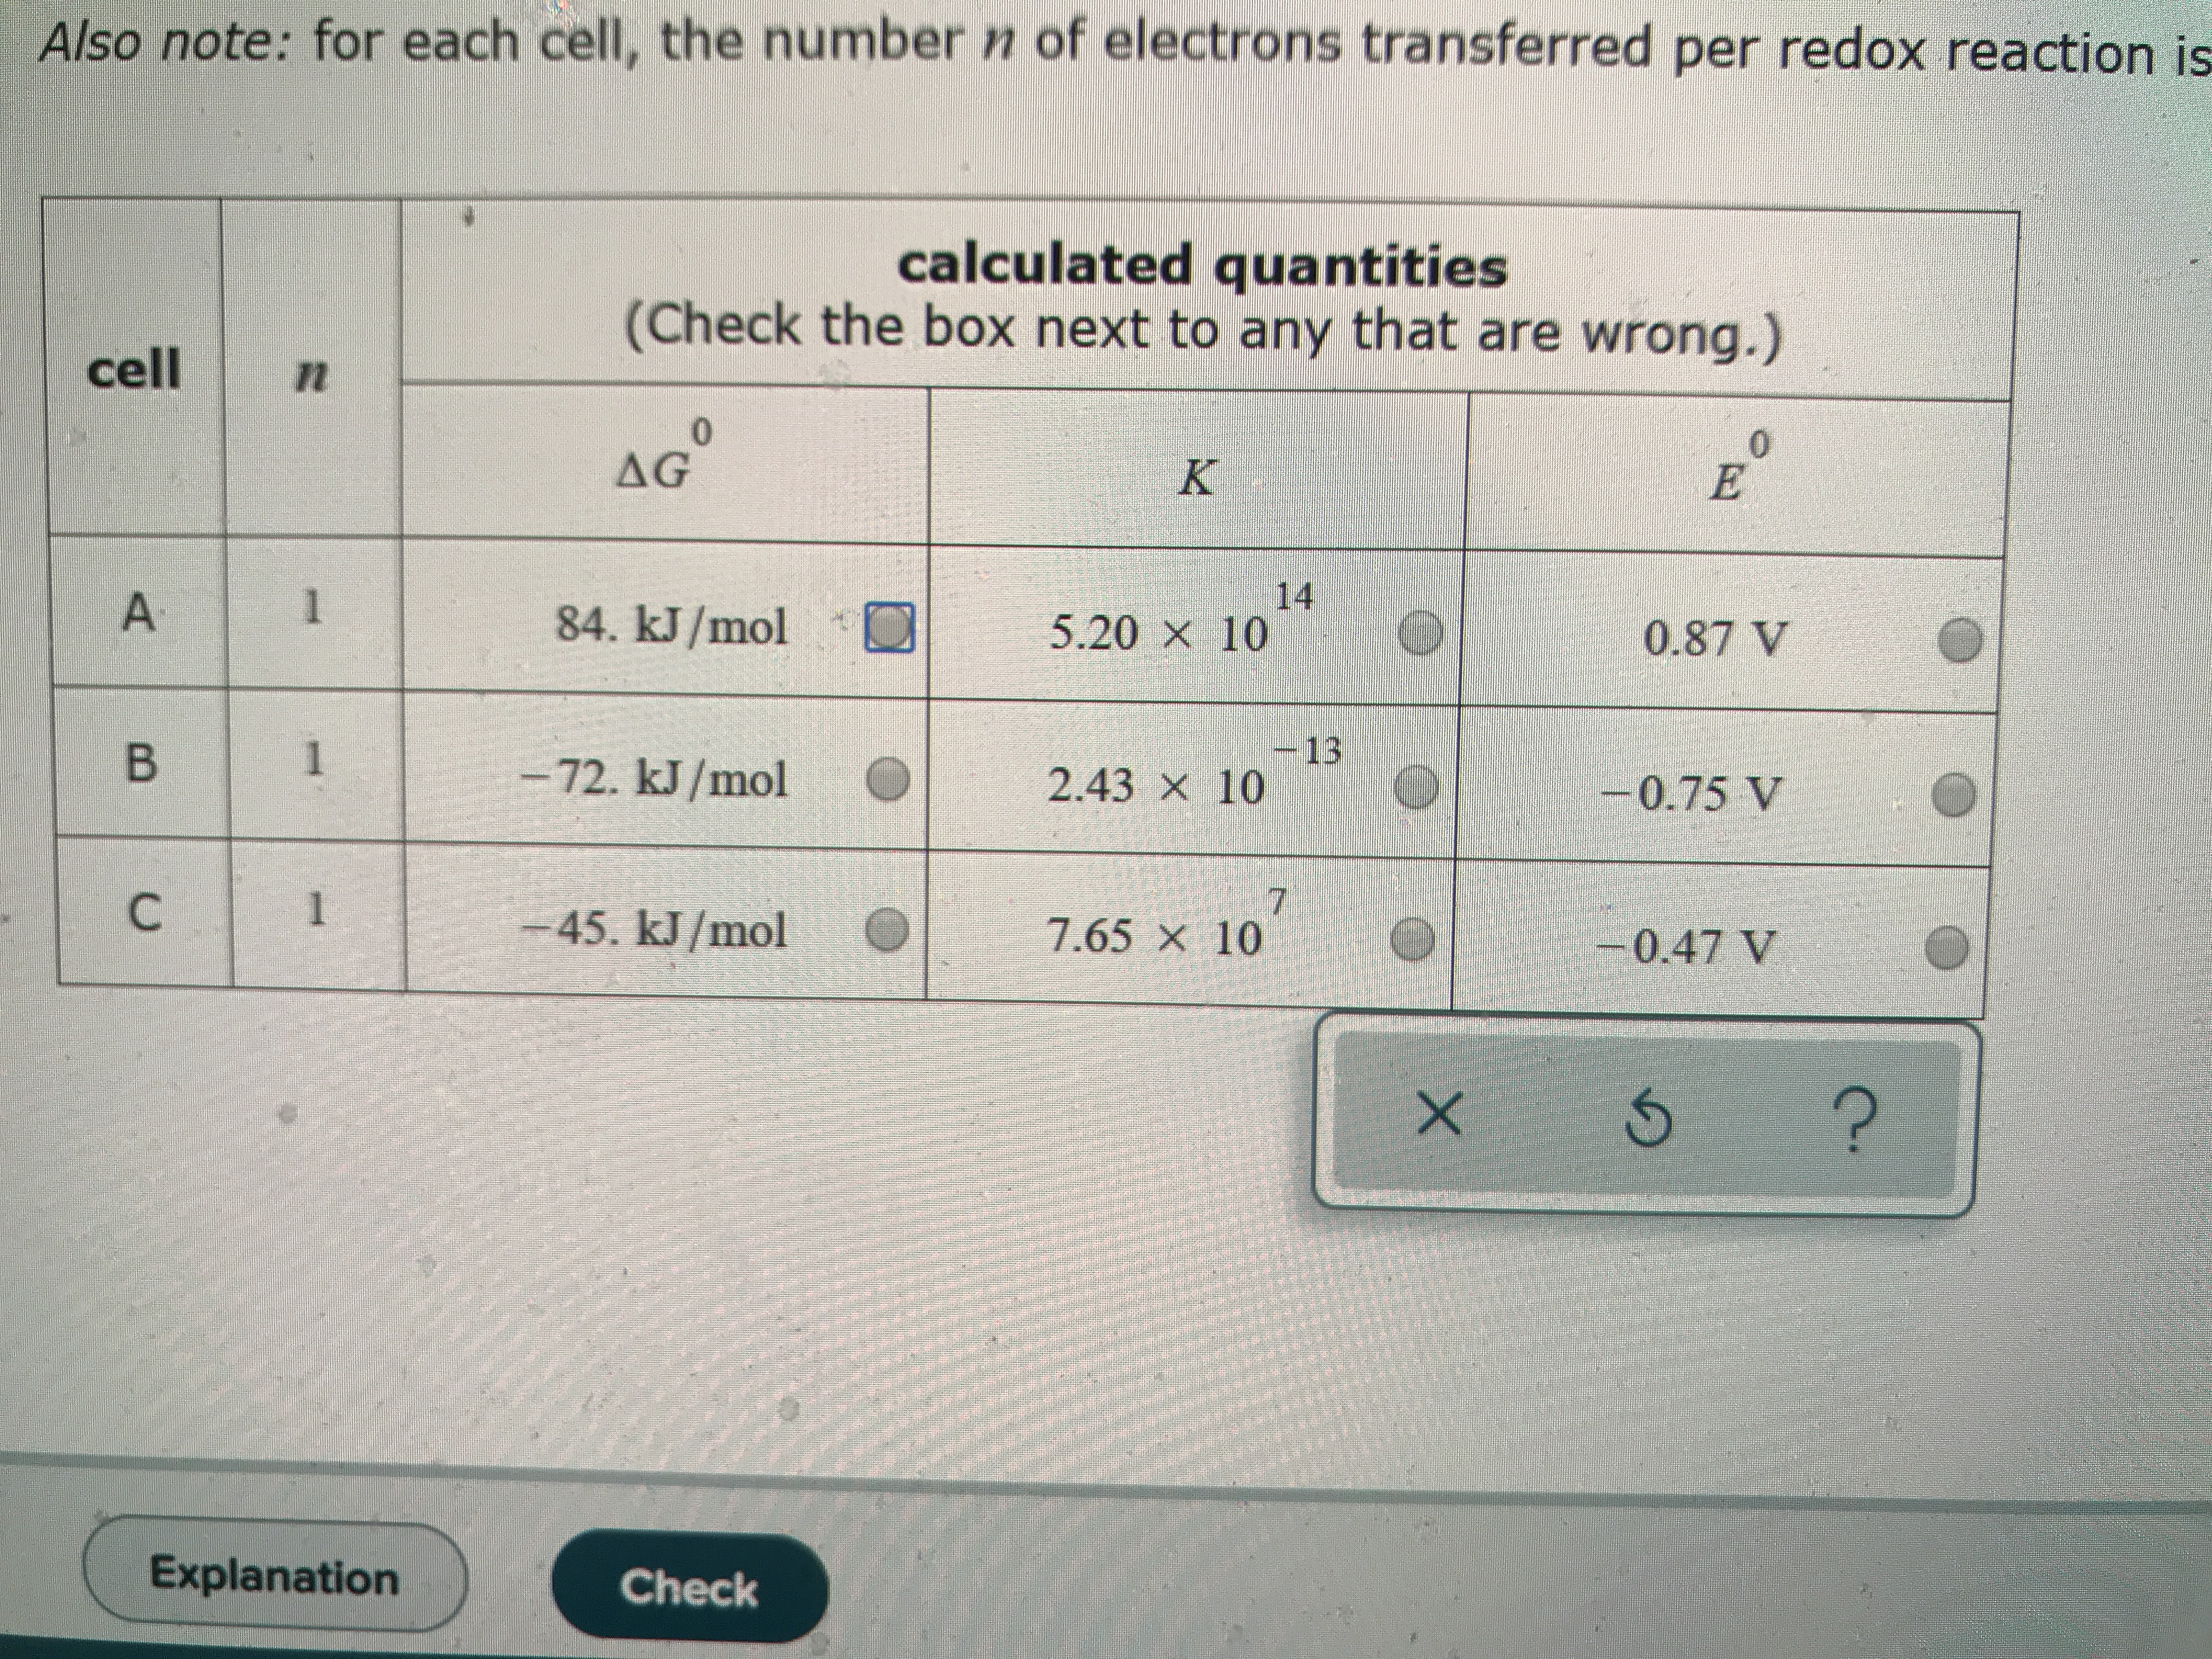 Also note: for each cell, the number n of electrons transferred per redox reaction is calculated quantities (Check the box next to any that are wrong.) cell n 0 E AG0 K 14 5.20 x 10 1 84. kJ/mol 0.87 V 13 2.43 x 10 1 B -72. kJ/mol -0.75 V 7 7.65 x 10 1 45. kJ/mol -0.47 V ? Explanation Check X A C